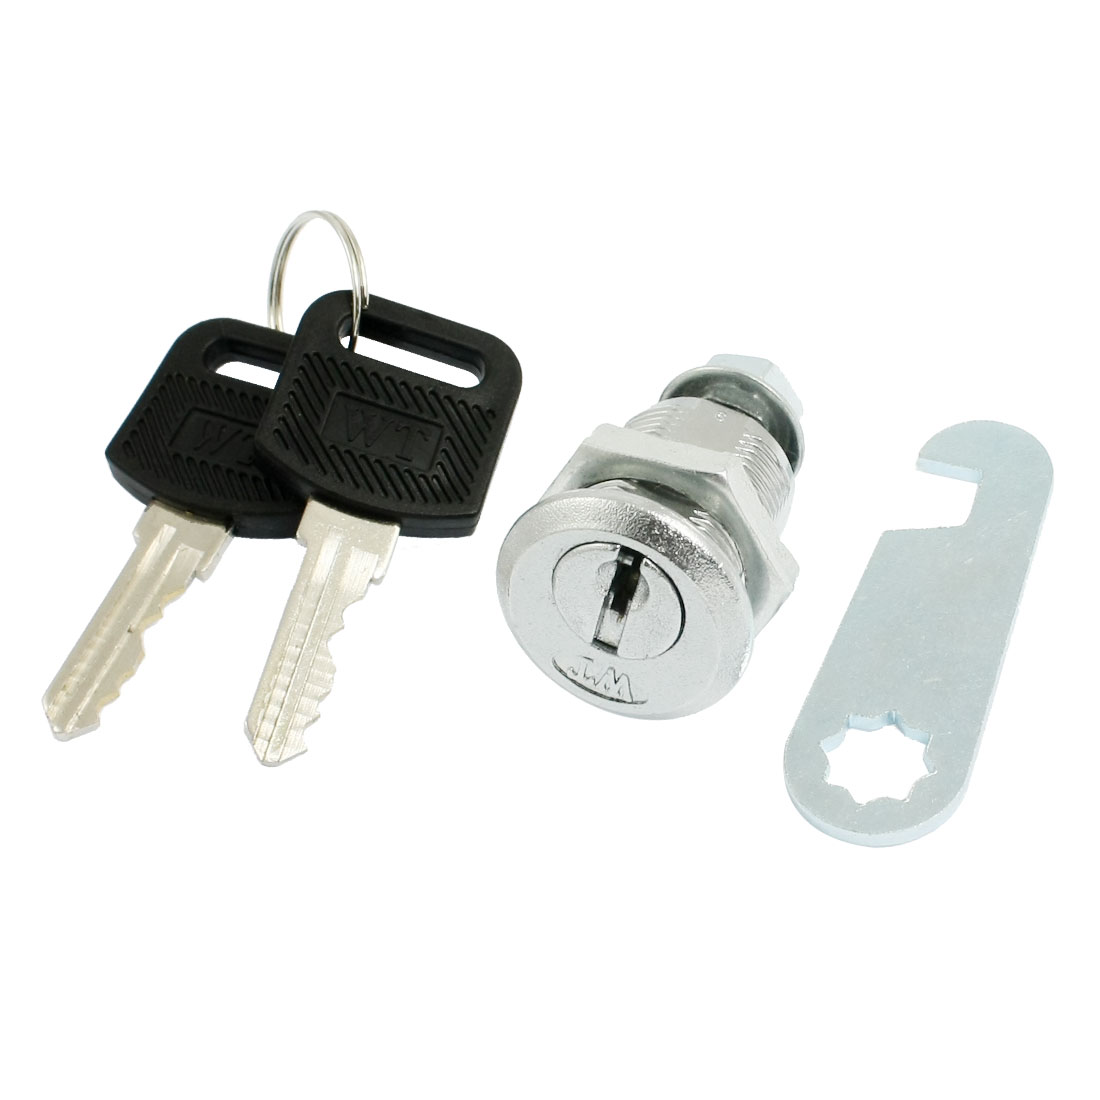 "Cabinet 0.7"" Male Thread Quarter Turn Security Cam Lock w Keys"